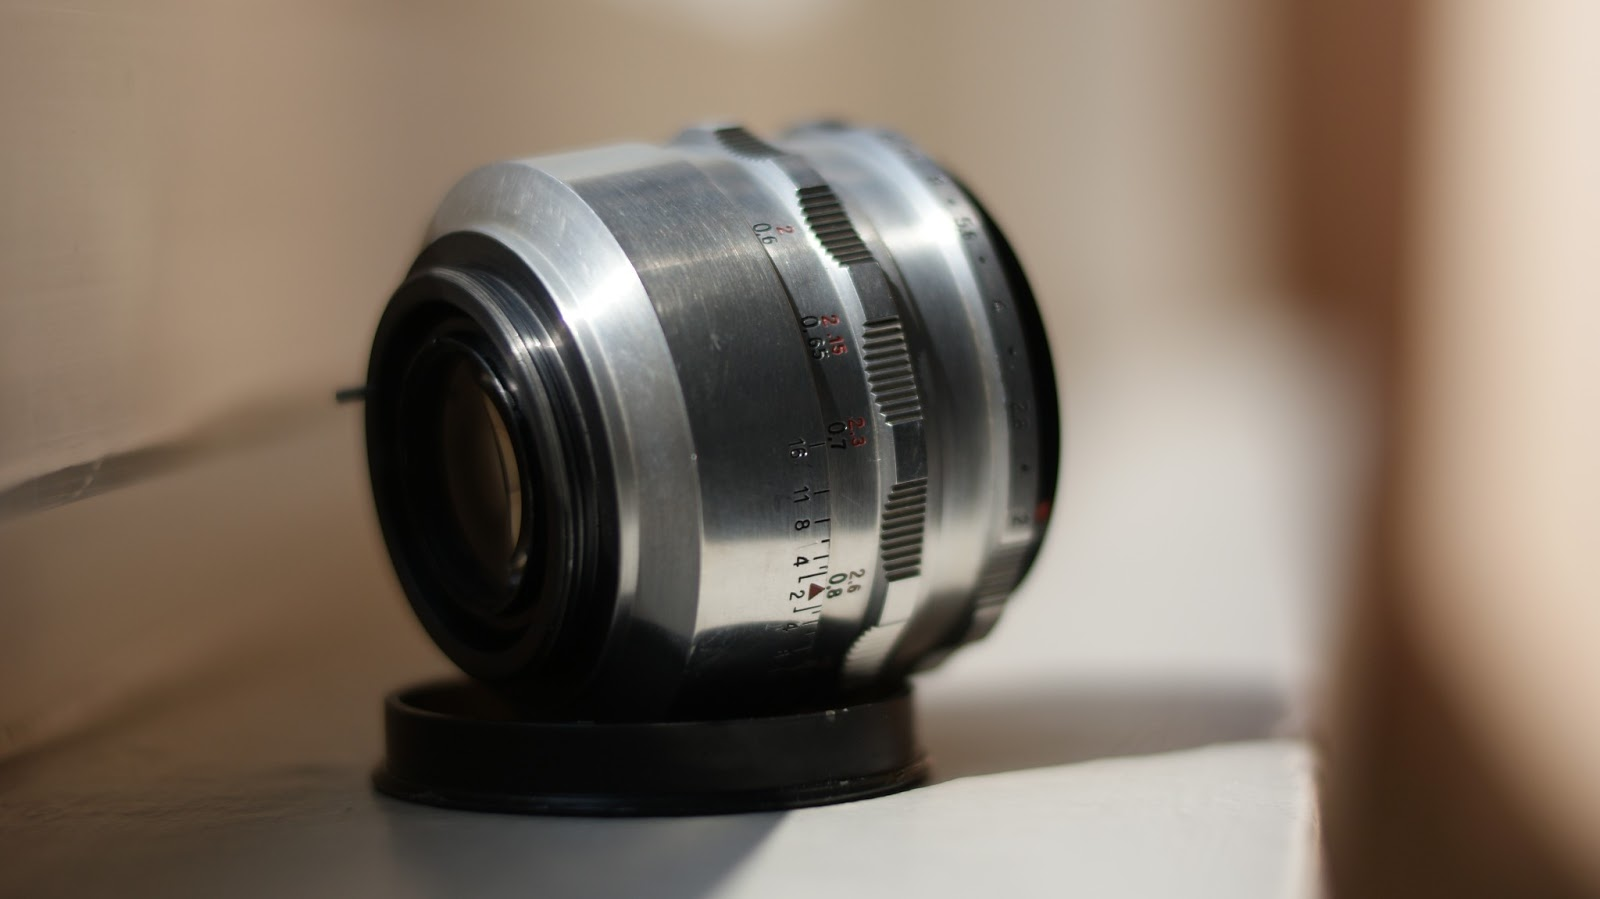 Carl Zeiss Jena Biotar 58mm f/2 M42